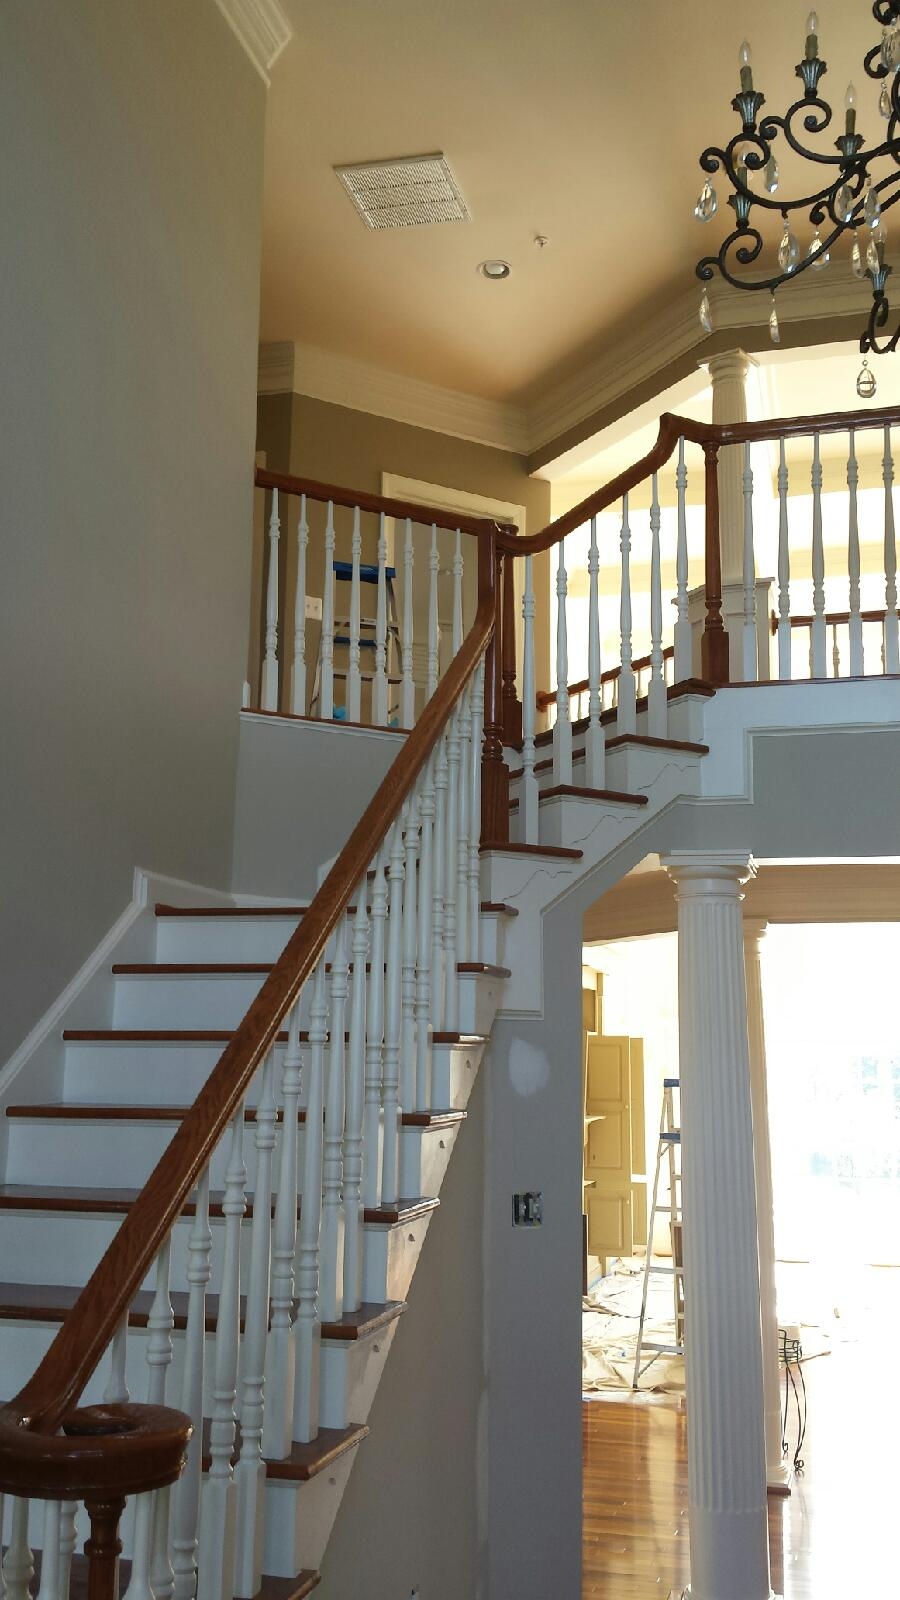 bryan's road md house painters